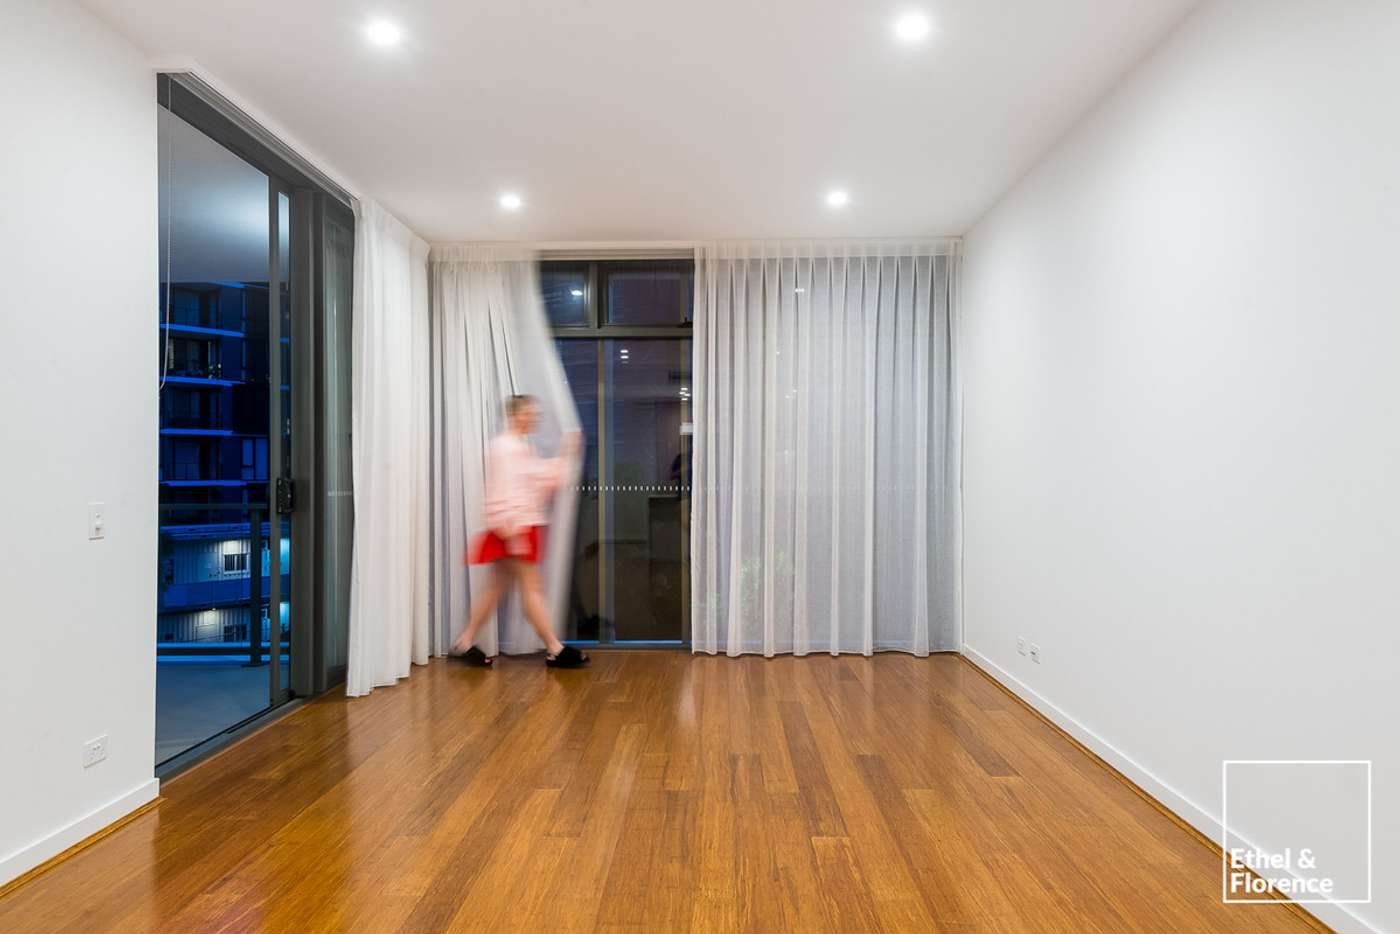 Main view of Homely apartment listing, 5401/331 MacArthur Avenue, Hamilton QLD 4007